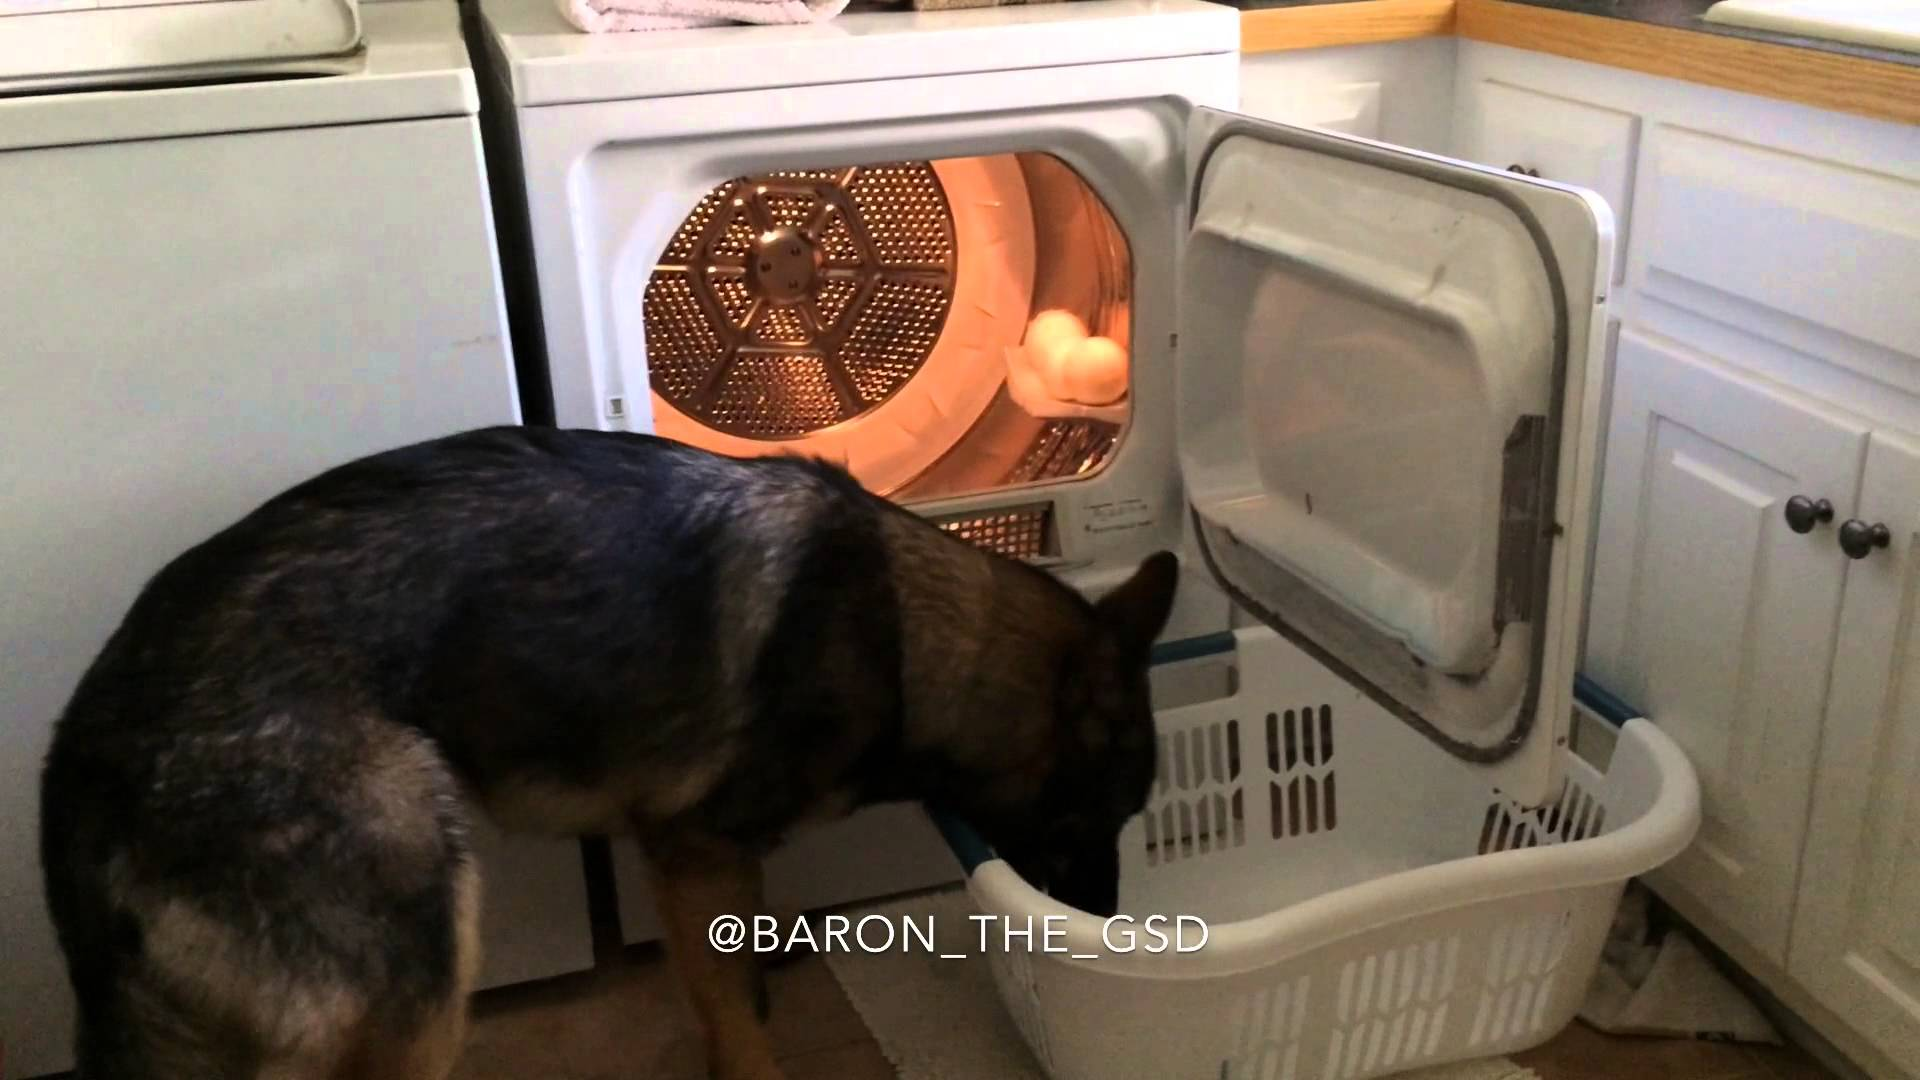 Baron, the German Shepherd housekeeper